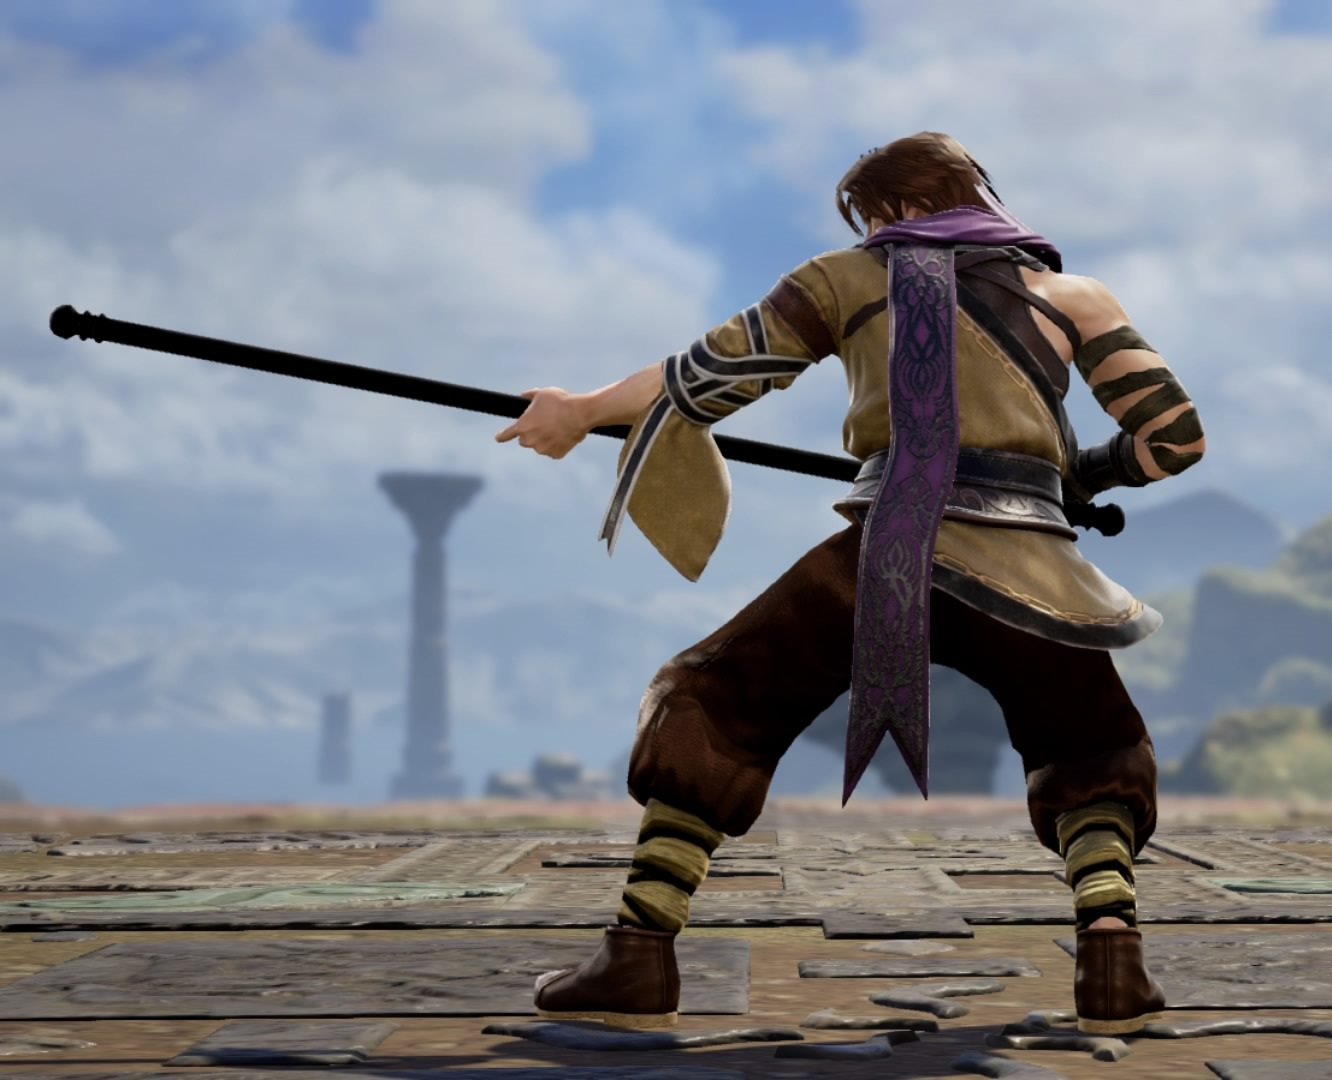 Erid from The Final Power: Chronomancer. Made using Creation mode in Soulcalibur 6. benjaminfrog.com